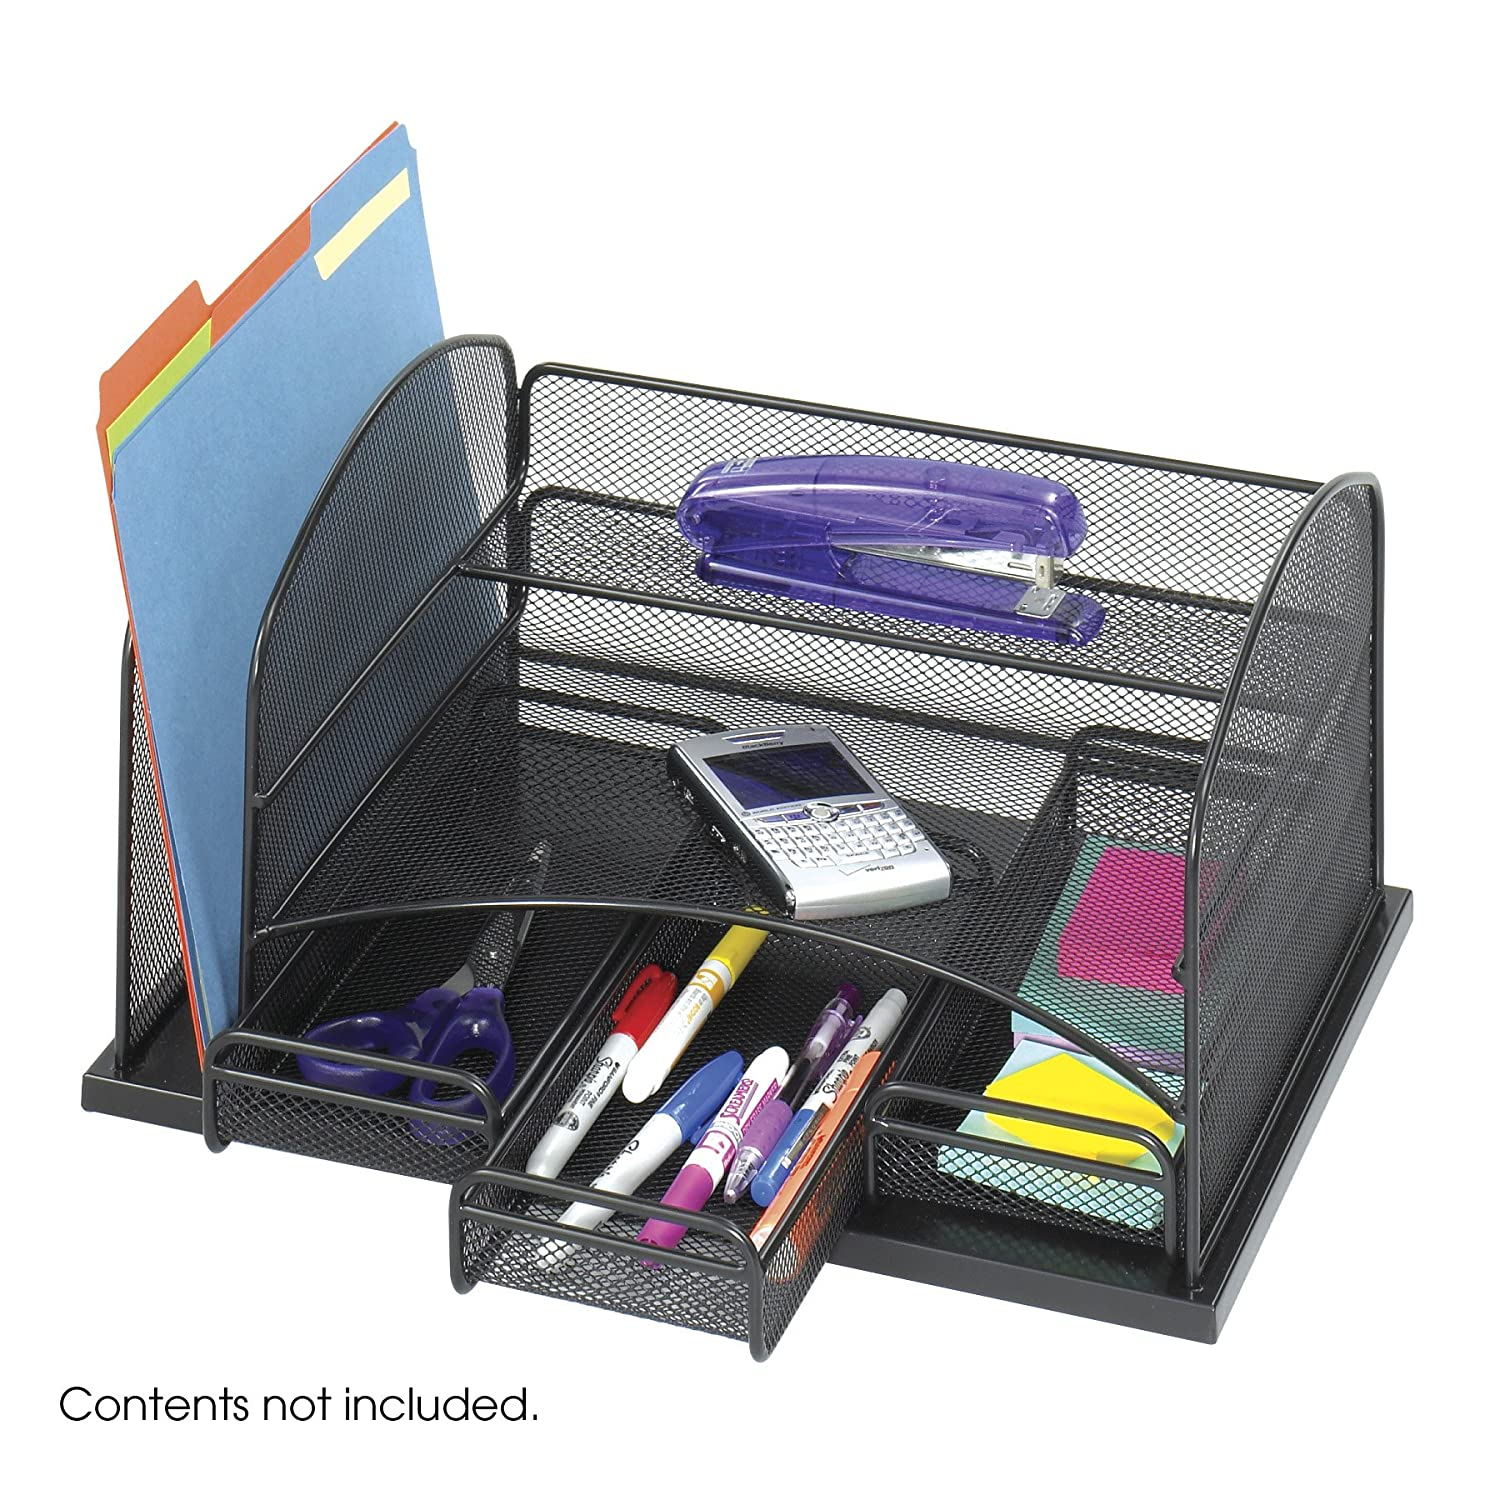 Safco products onyx mesh desk organizer with 3 drawers - Desk organizer drawers ...